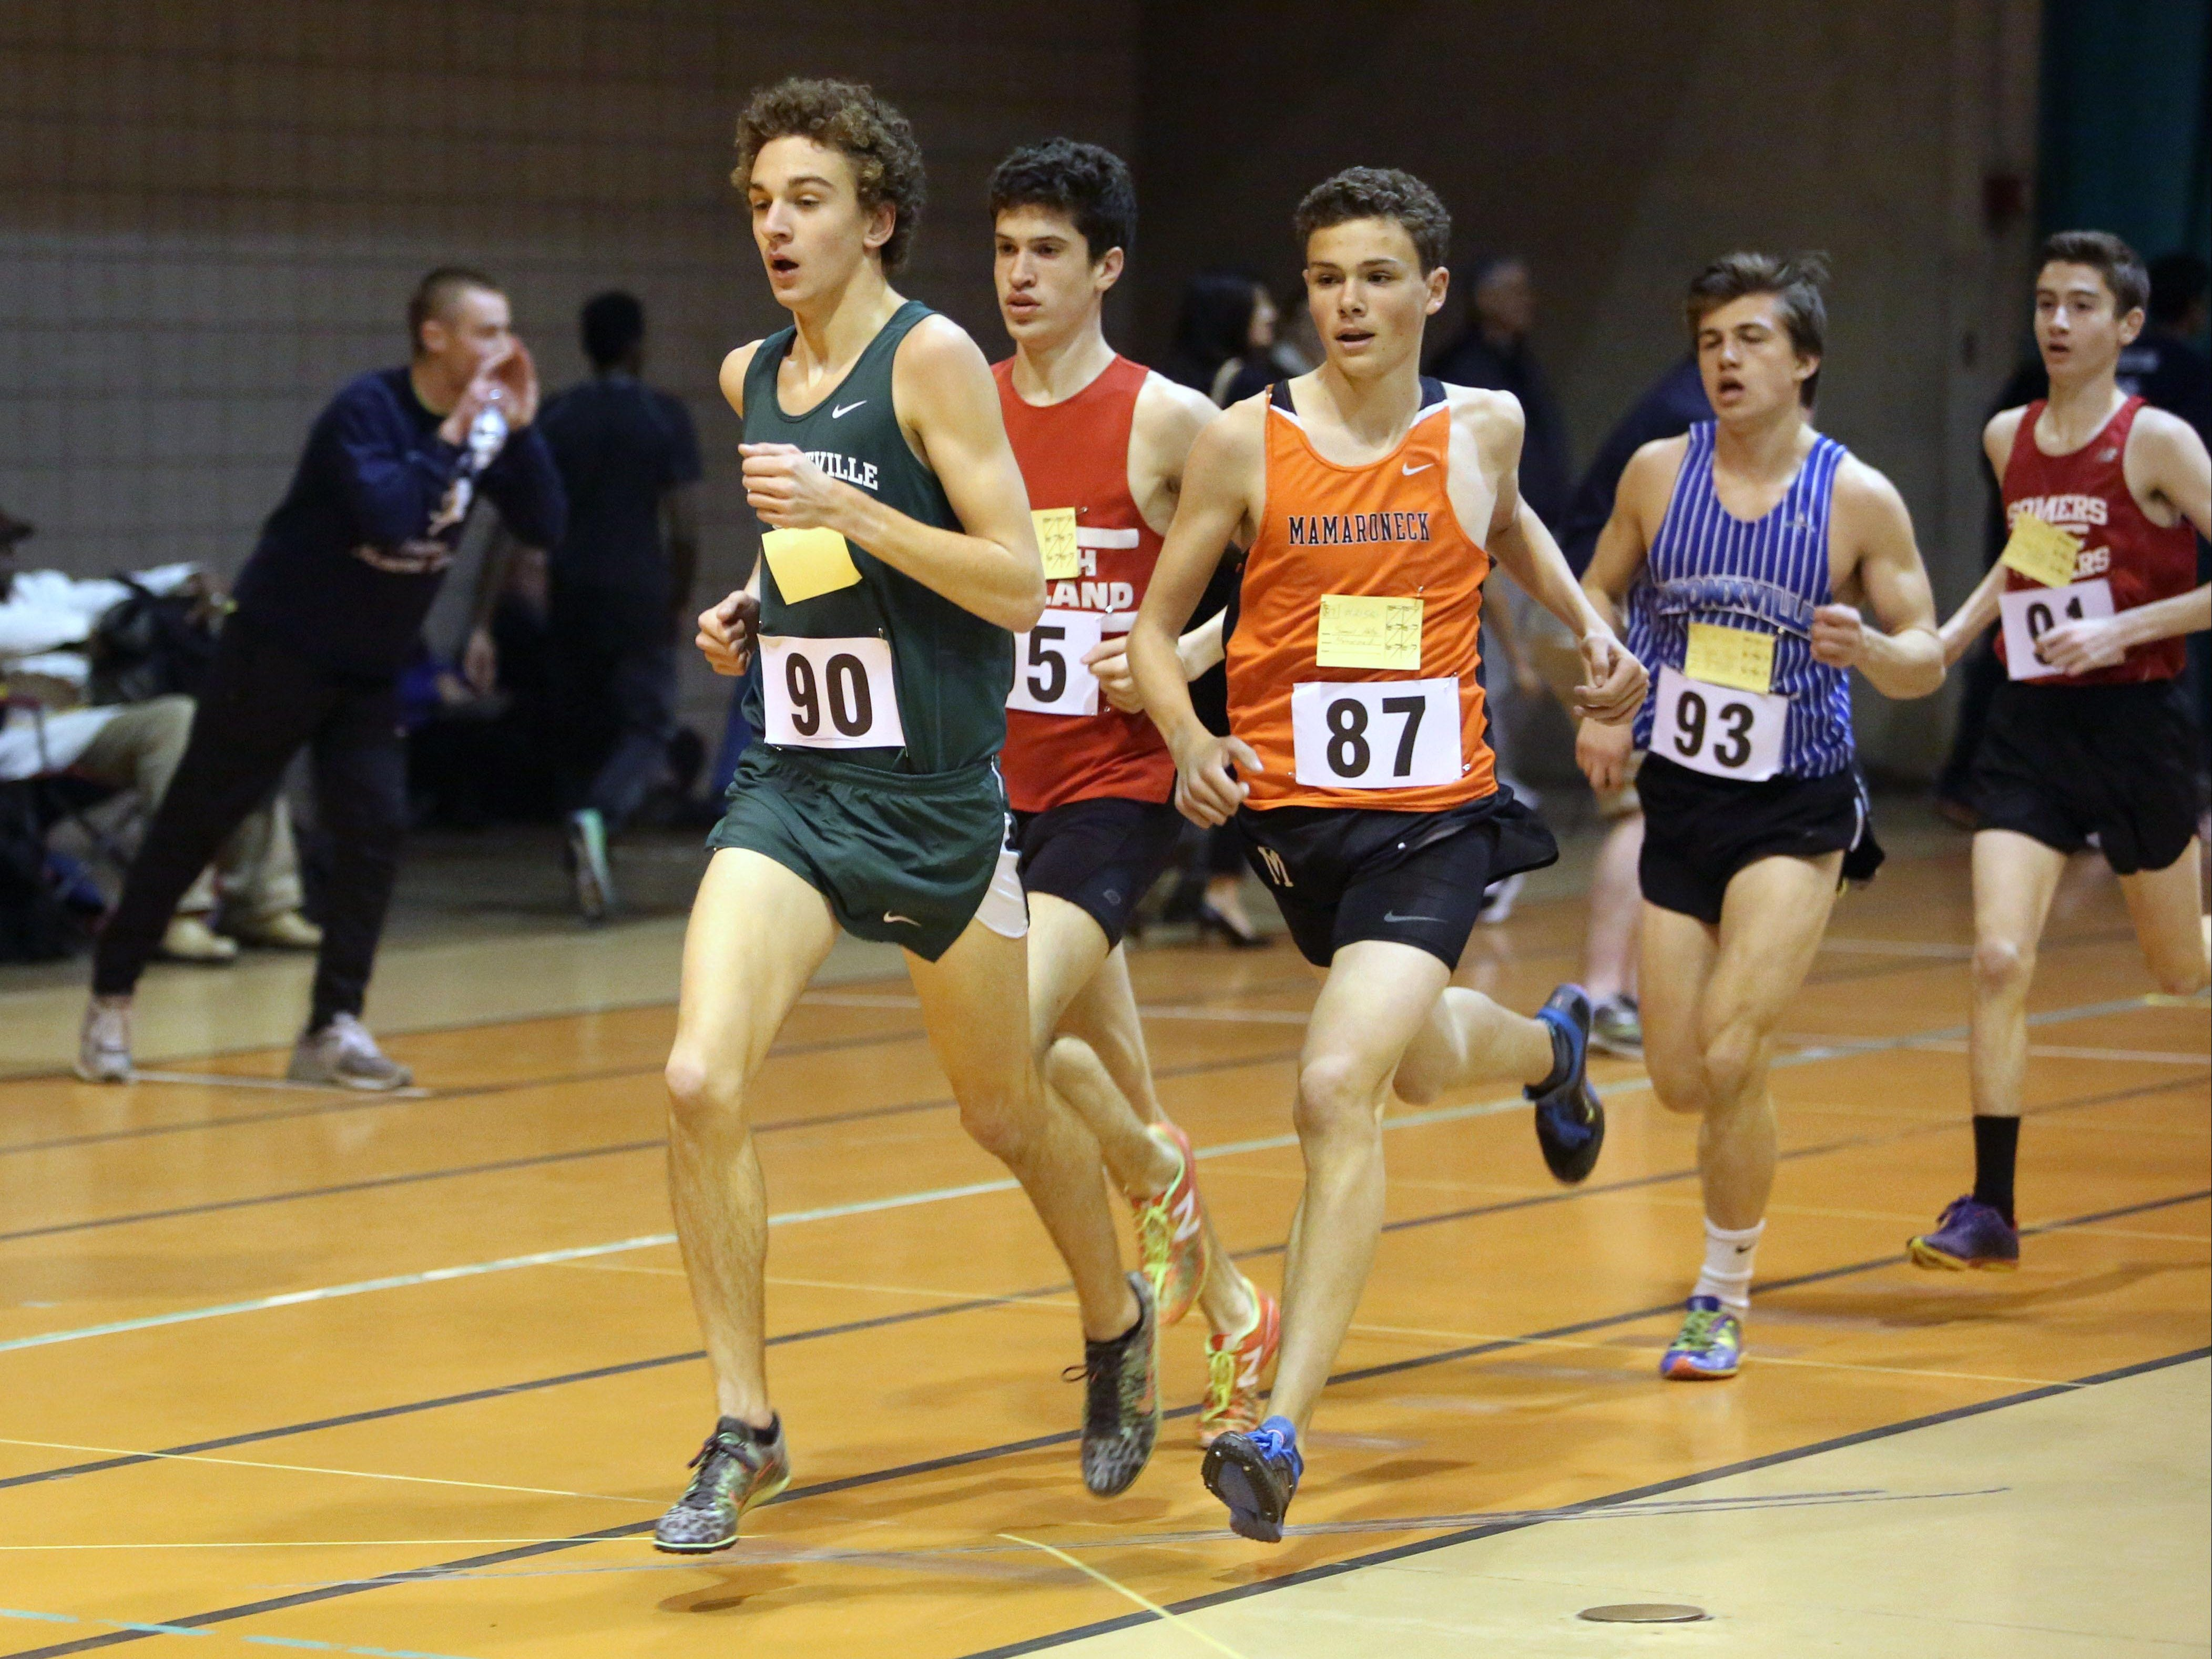 Drew Dorflinger from Pleasantville High School, left, won the boys 3,200 invitational during the Rockland Coaches Invitational indoor track meet Wednesday.